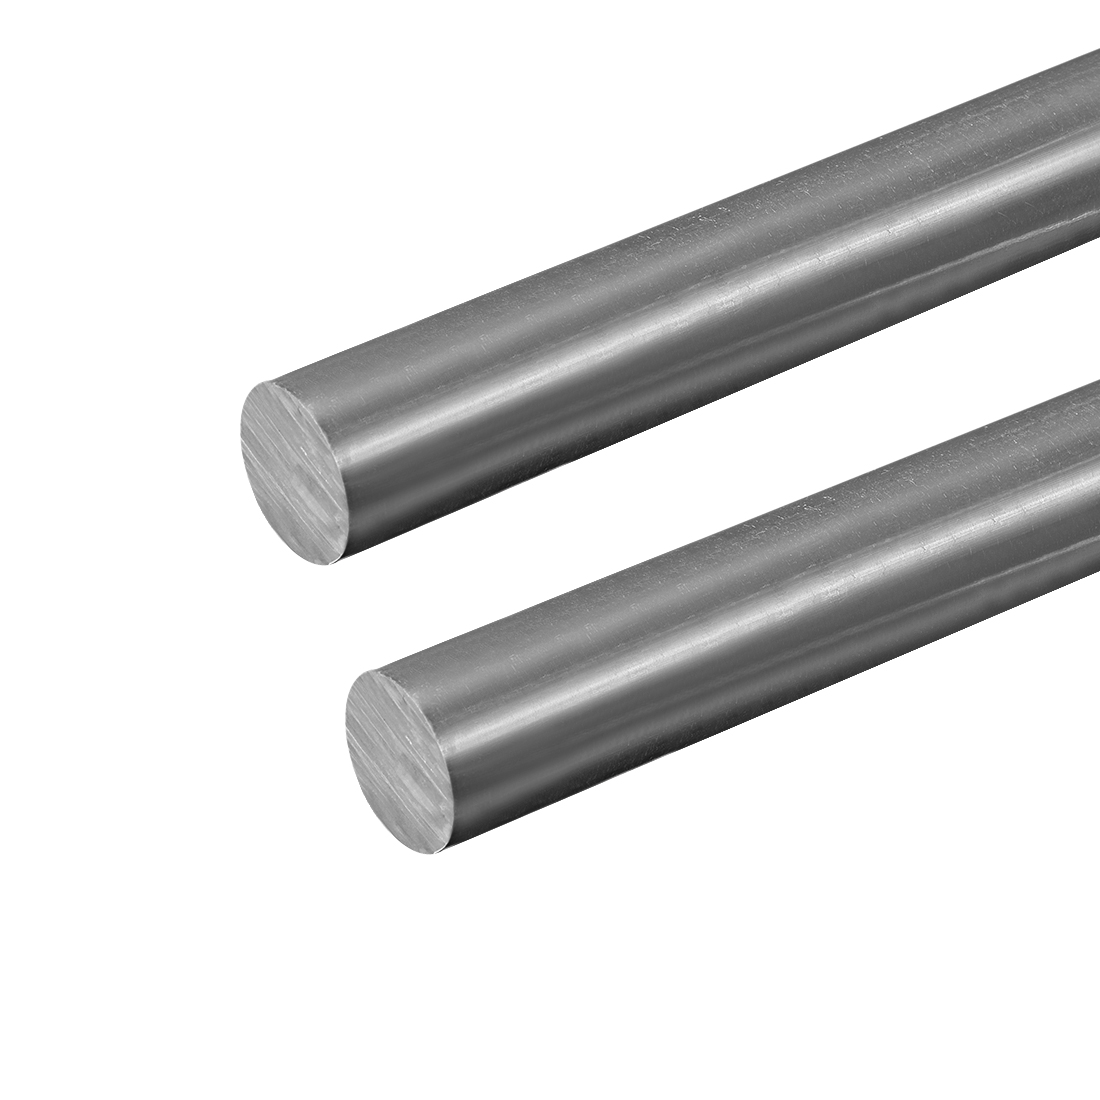 "PVC Round Rods ,20mm Dia, 20"" Length, Grey Engineering Plastic Round Rod 2 pcs"